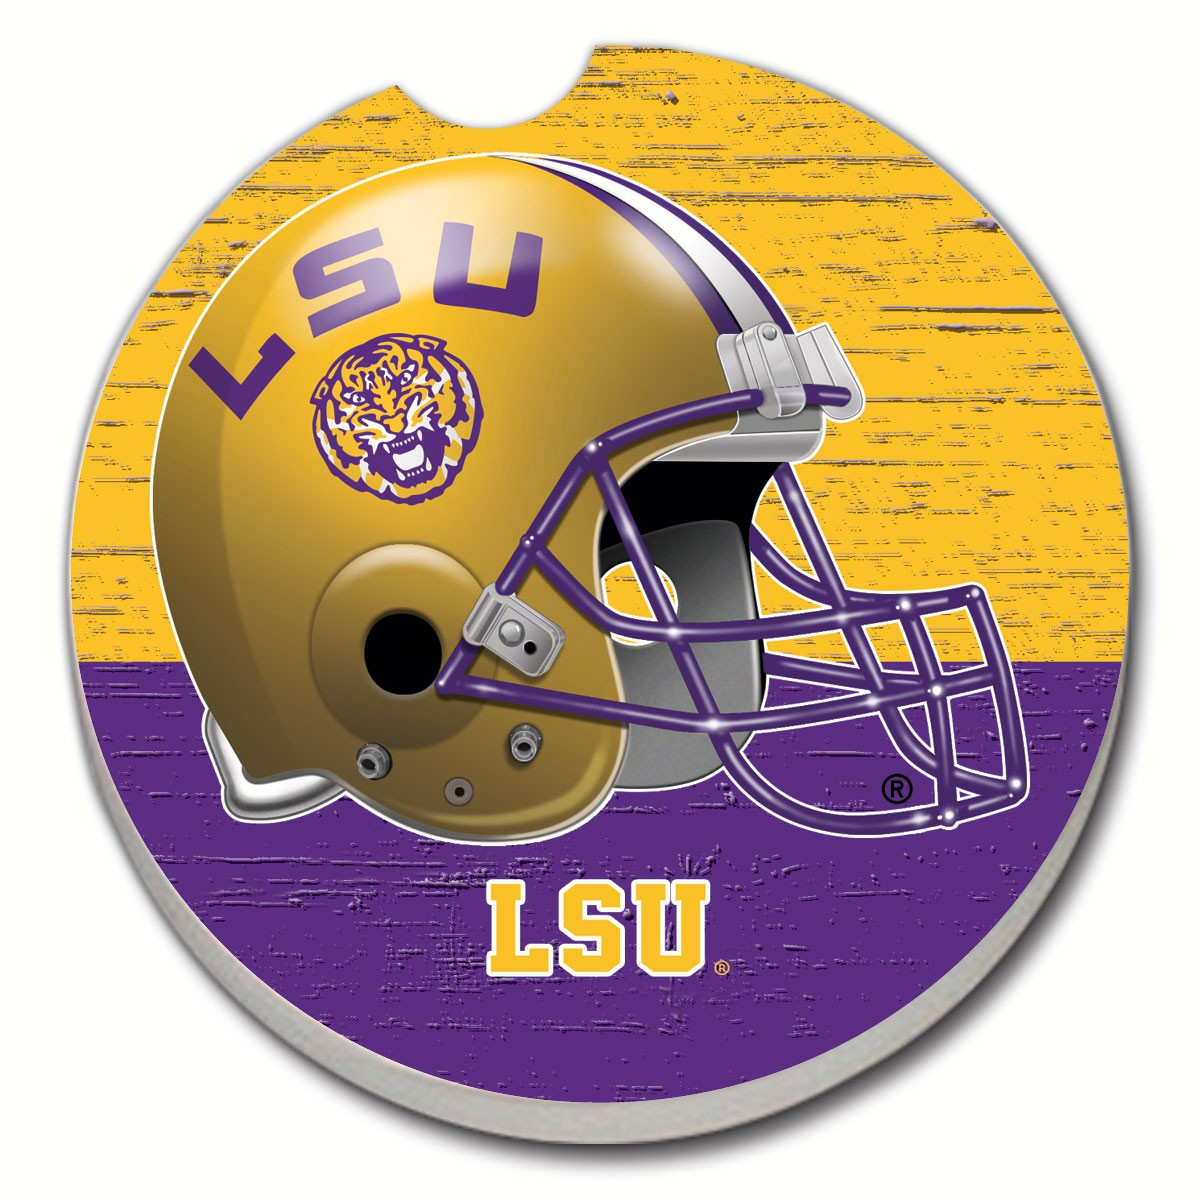 LSU Car Coaster